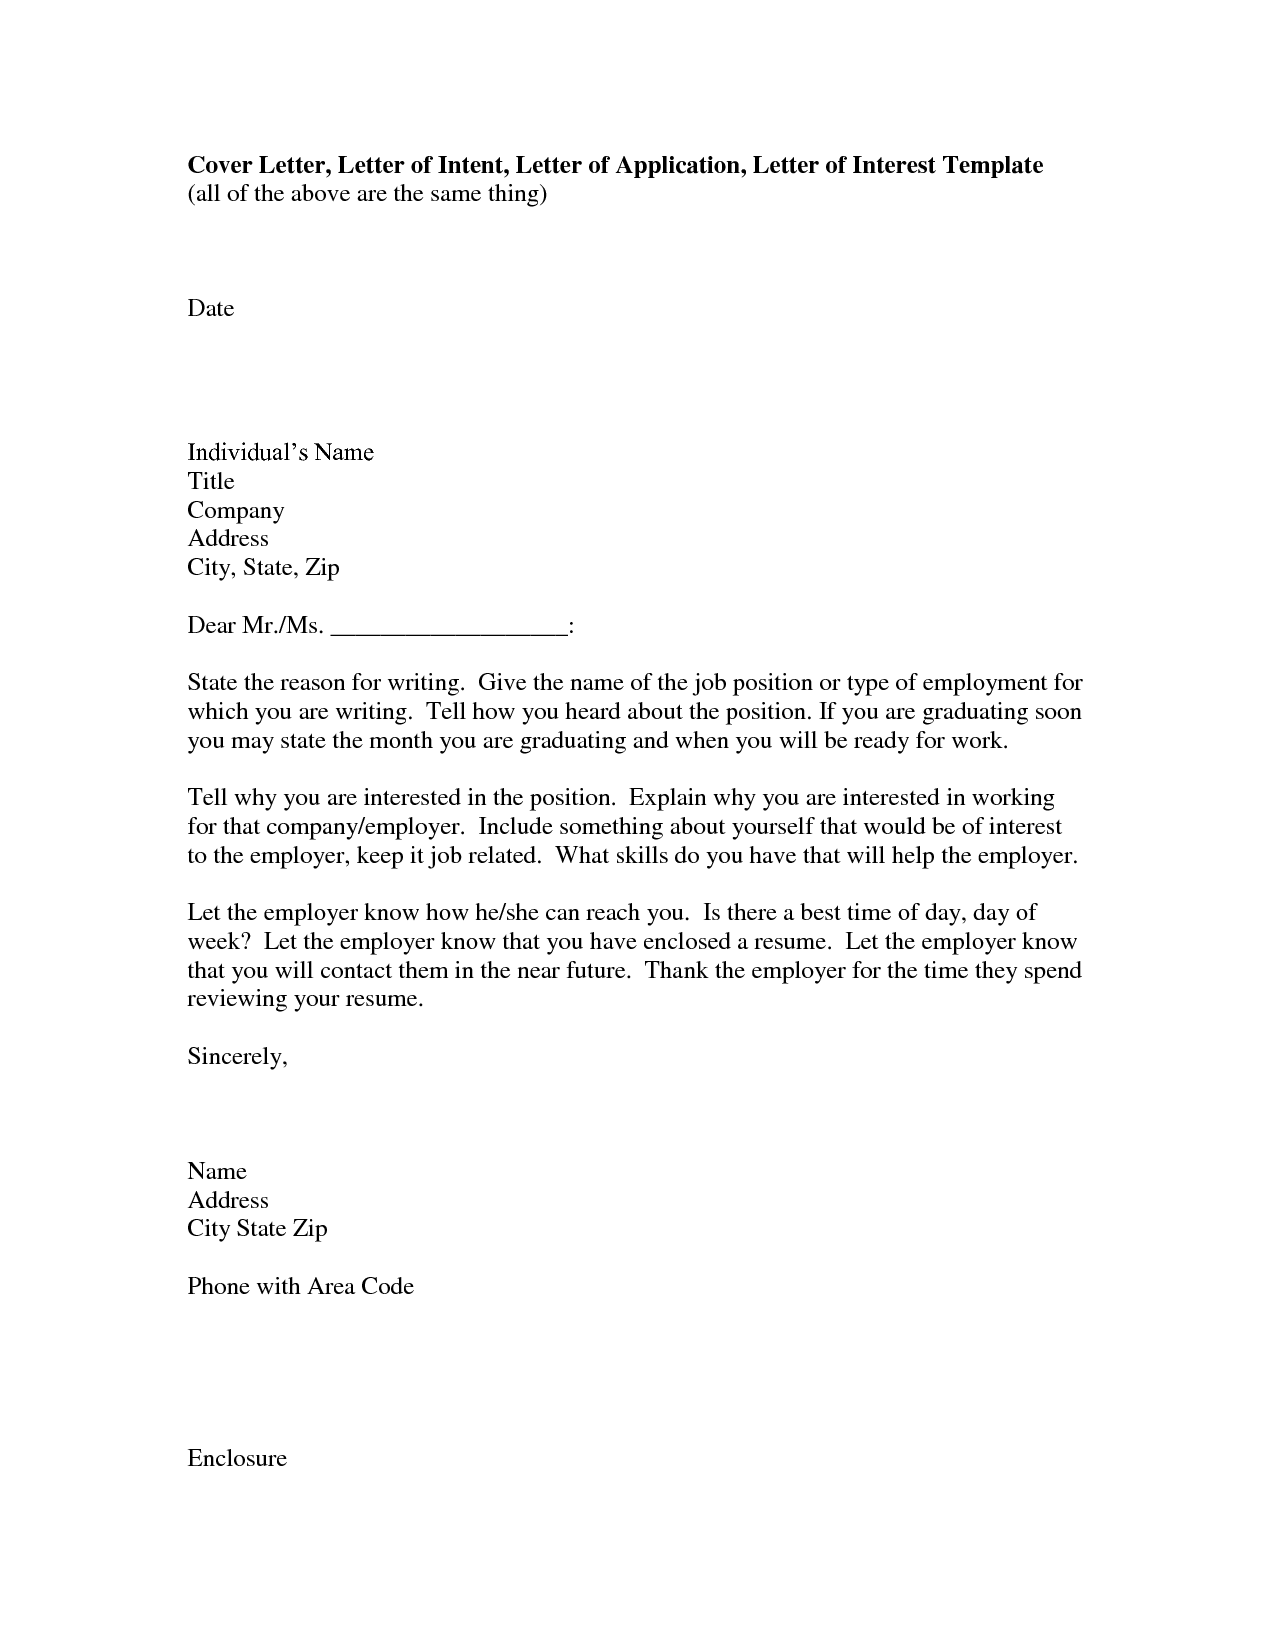 Open Office Cover Letter Template Download  HttpWwwResumecare